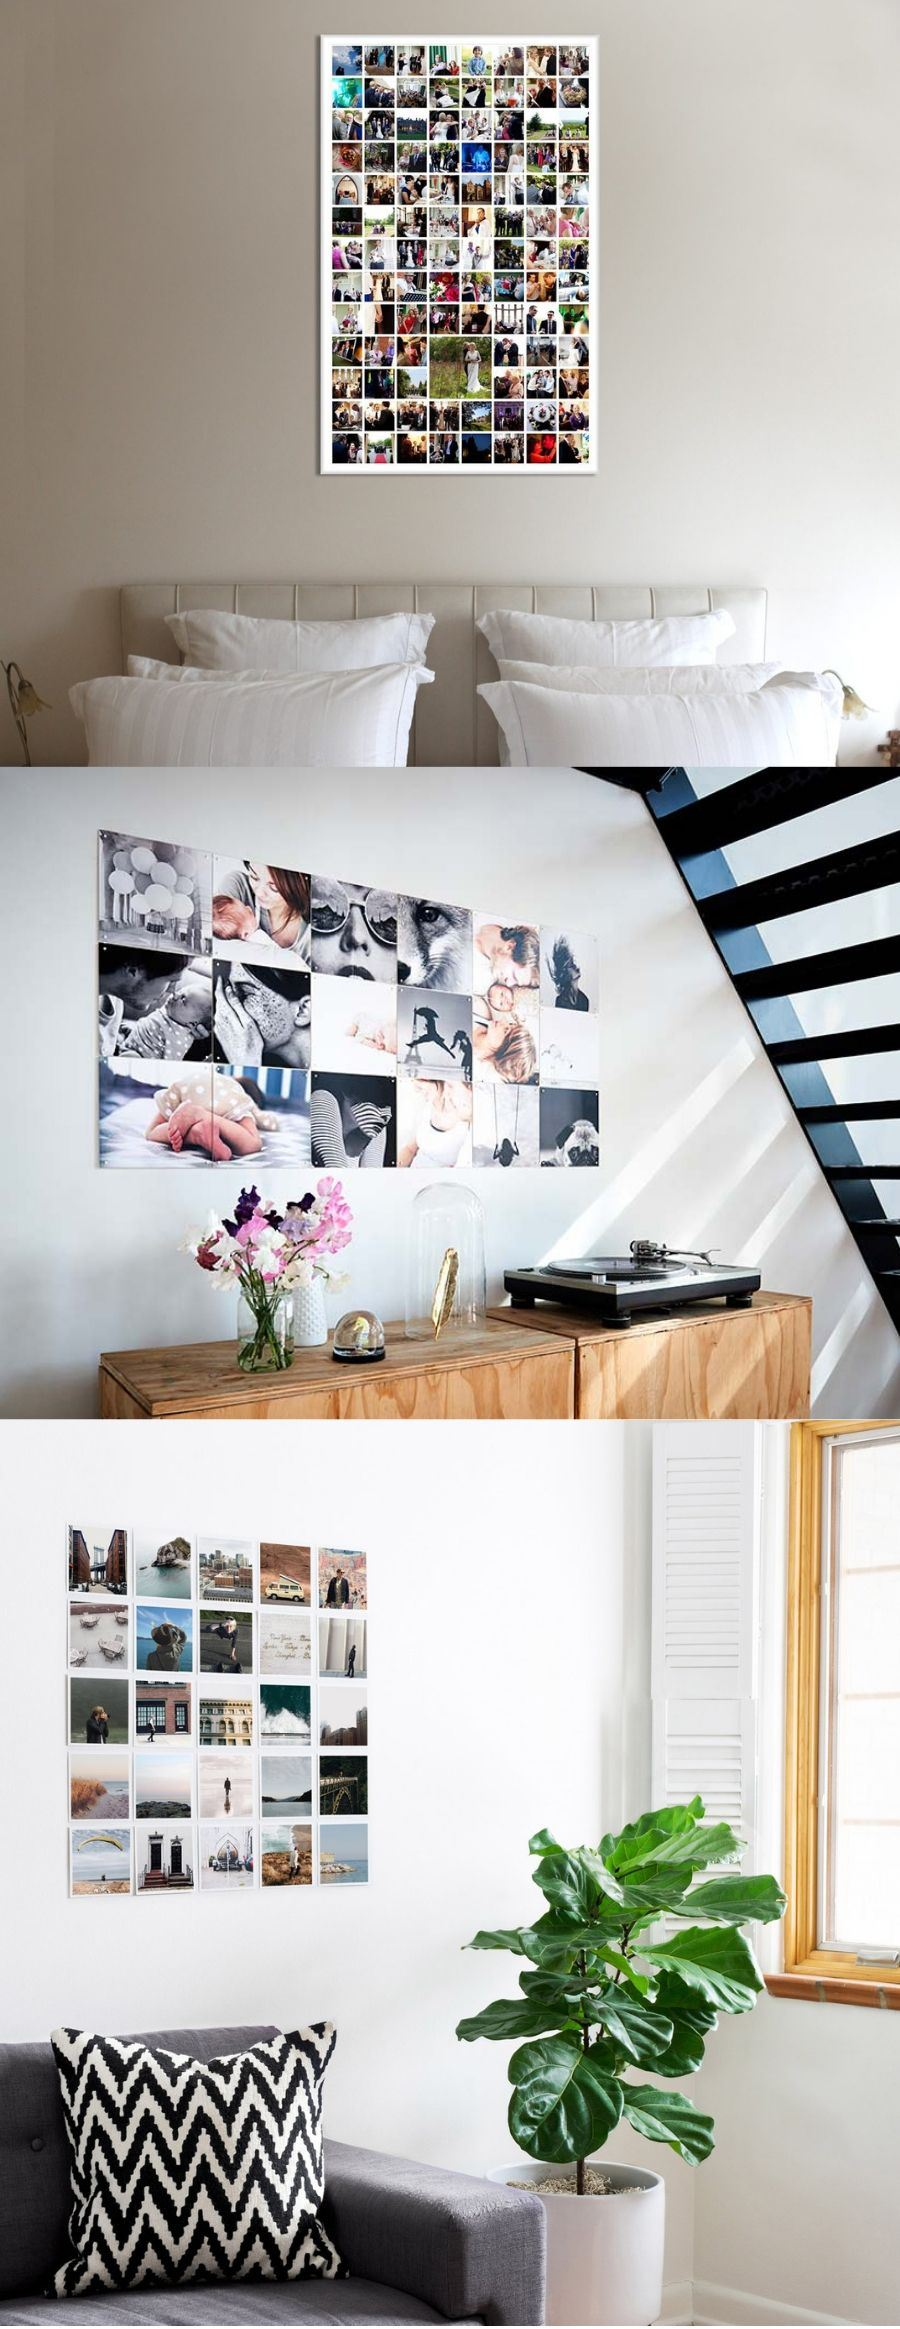 Photo Collage Ideas 15 Easy Ways To Play With Your Photos